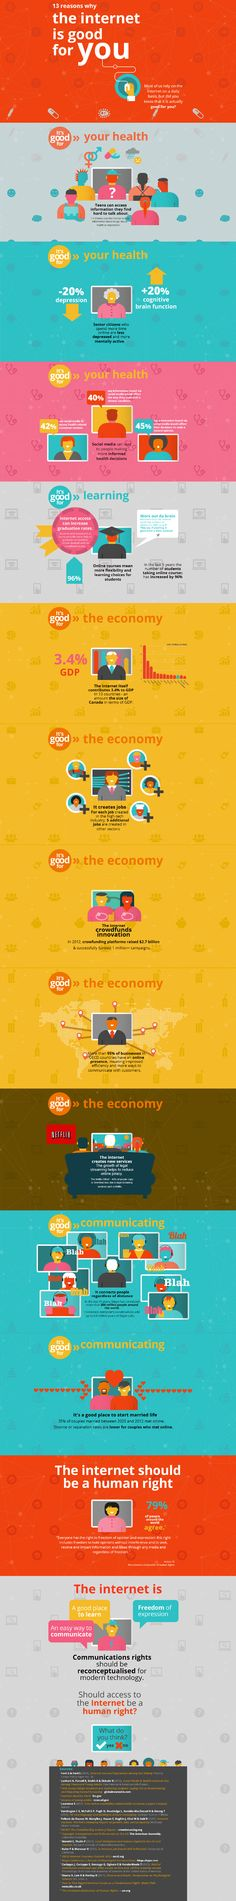 Why the Internet and Social Media Is Good For You - #infographic #internet #socialmedia #technology